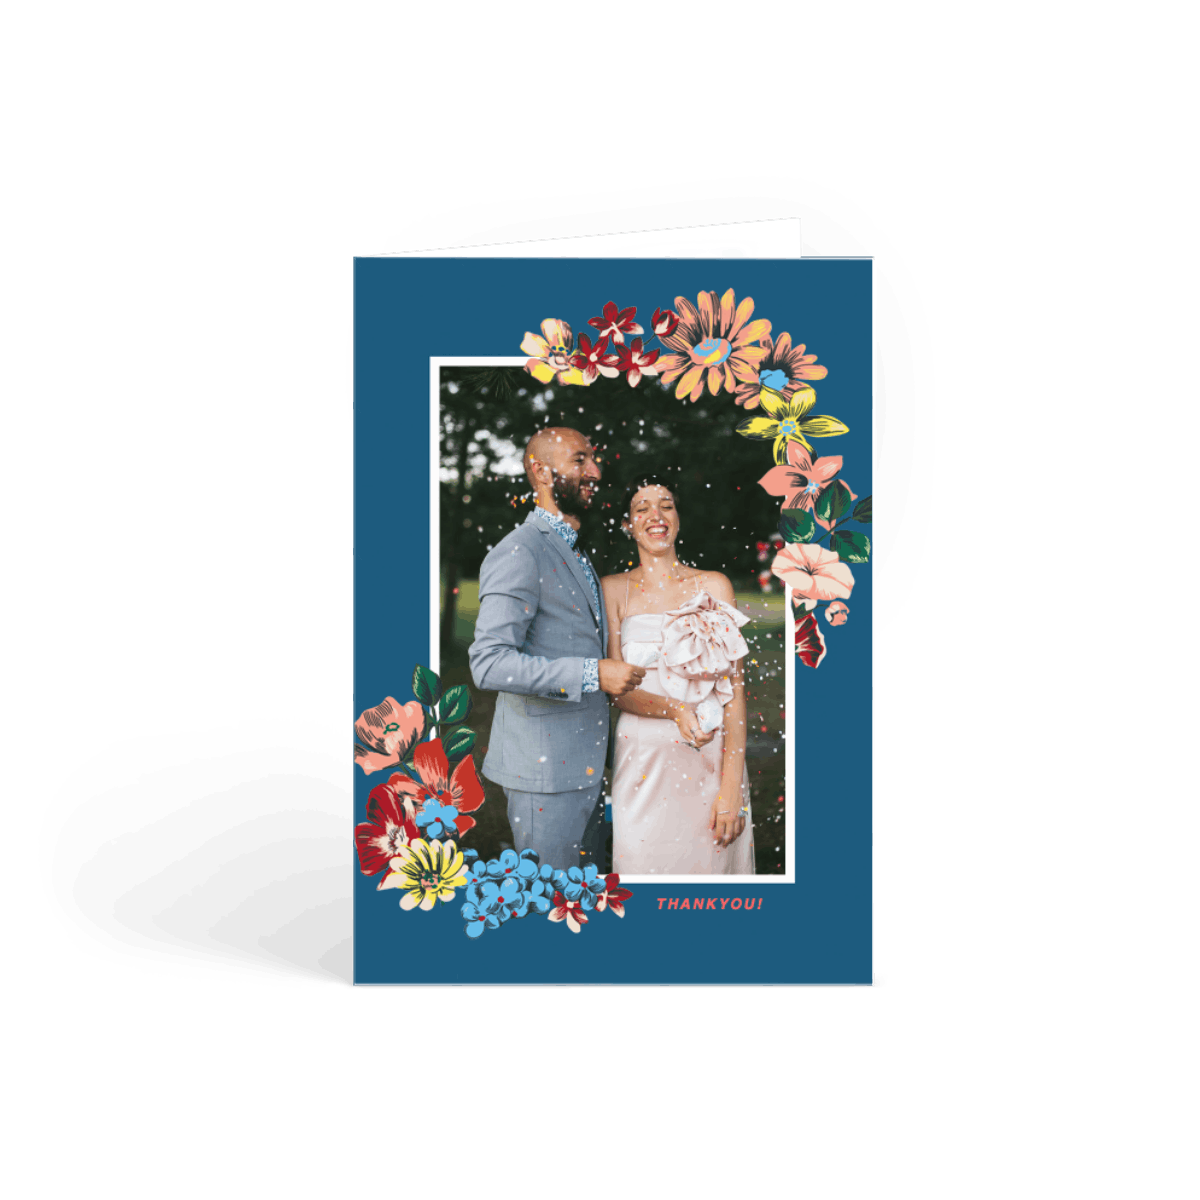 Https%3a%2f%2fwww.papier.com%2fproduct image%2f39548%2f2%2fditsy floral 9827 vorderseite 1530552196.png?ixlib=rb 1.1